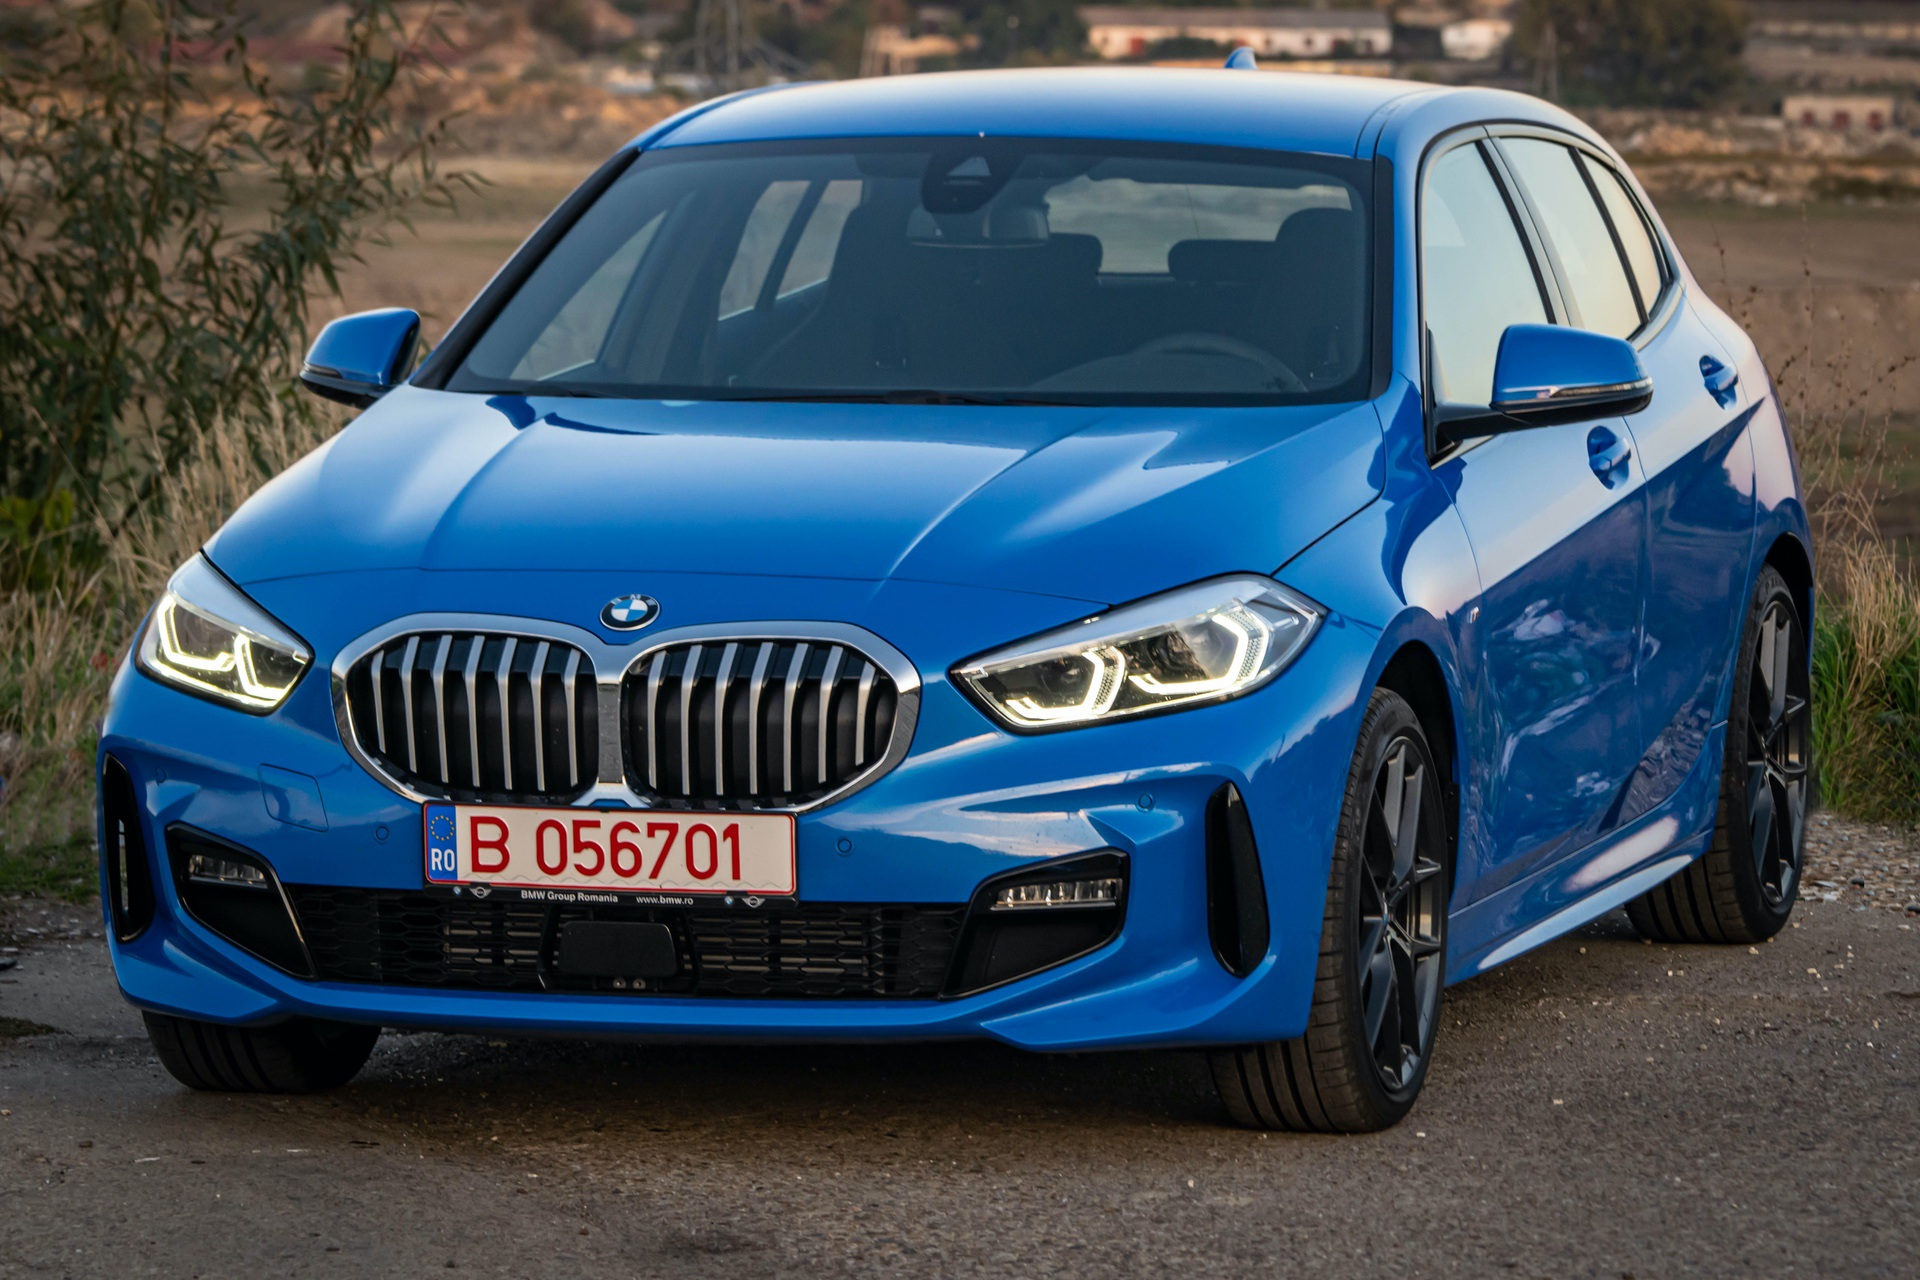 REVIEW: 2019 BMW 120d xDrive Hatchback